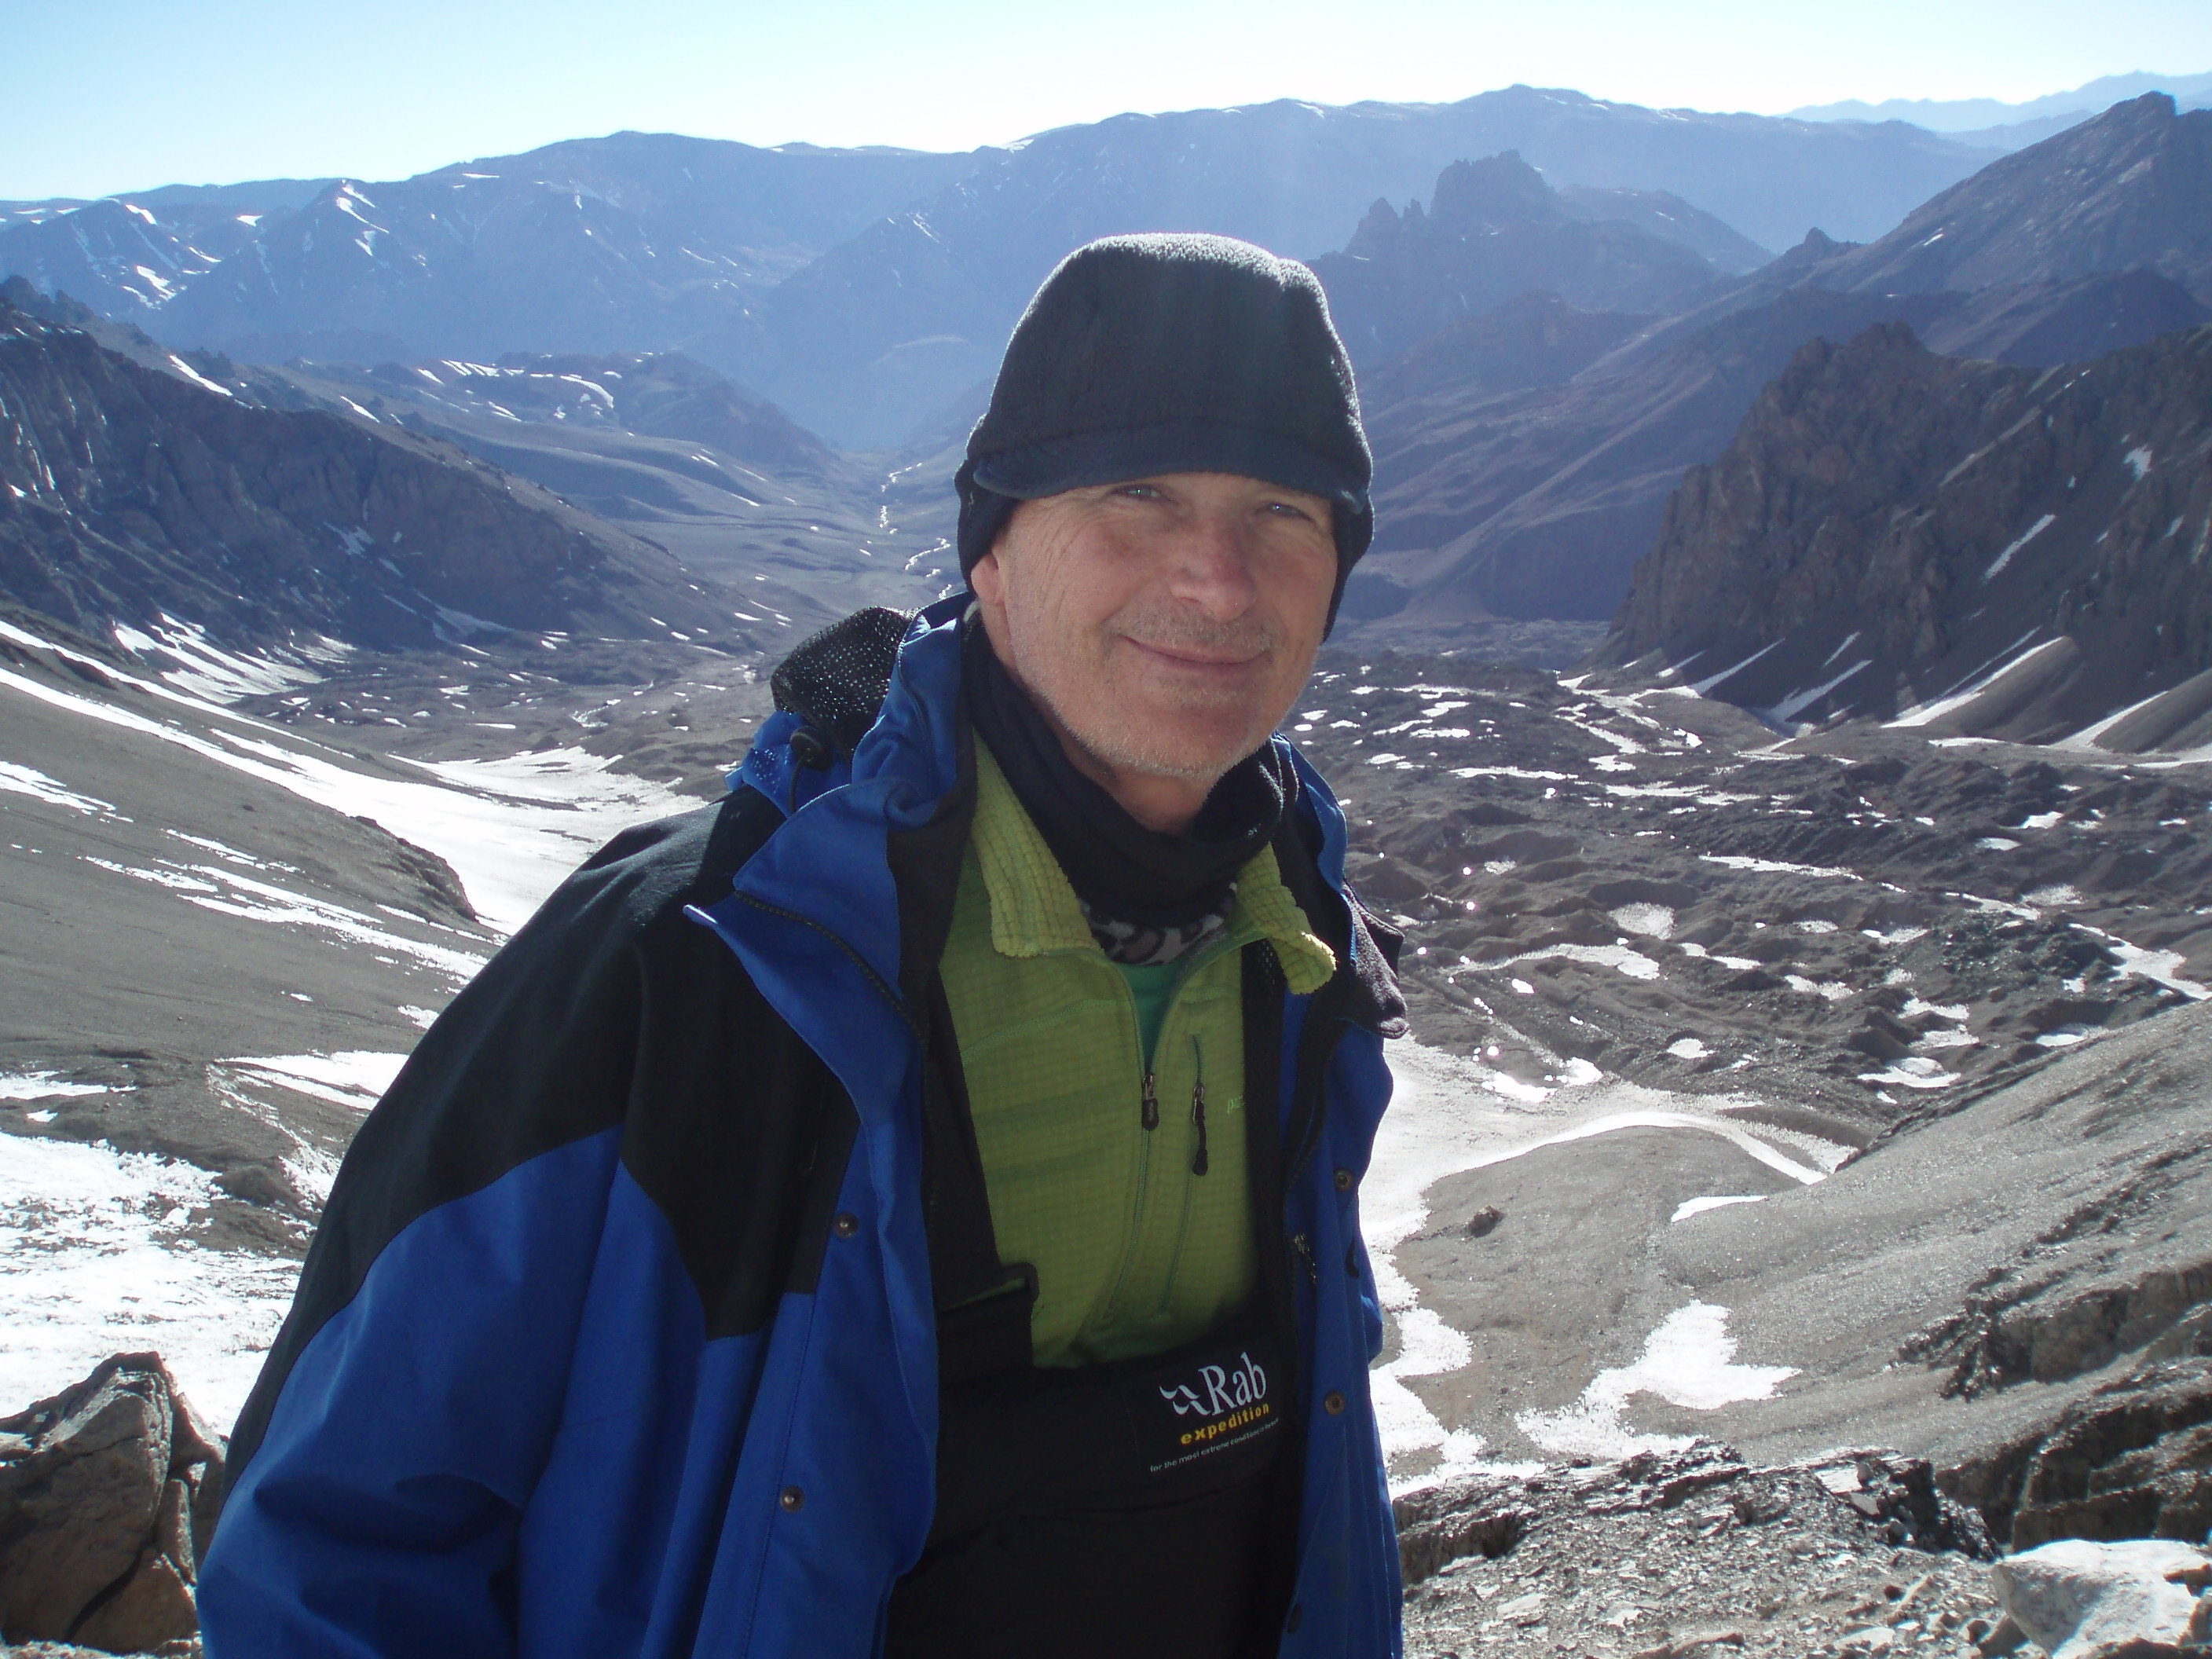 61-year-old Brit will climb Everest this April